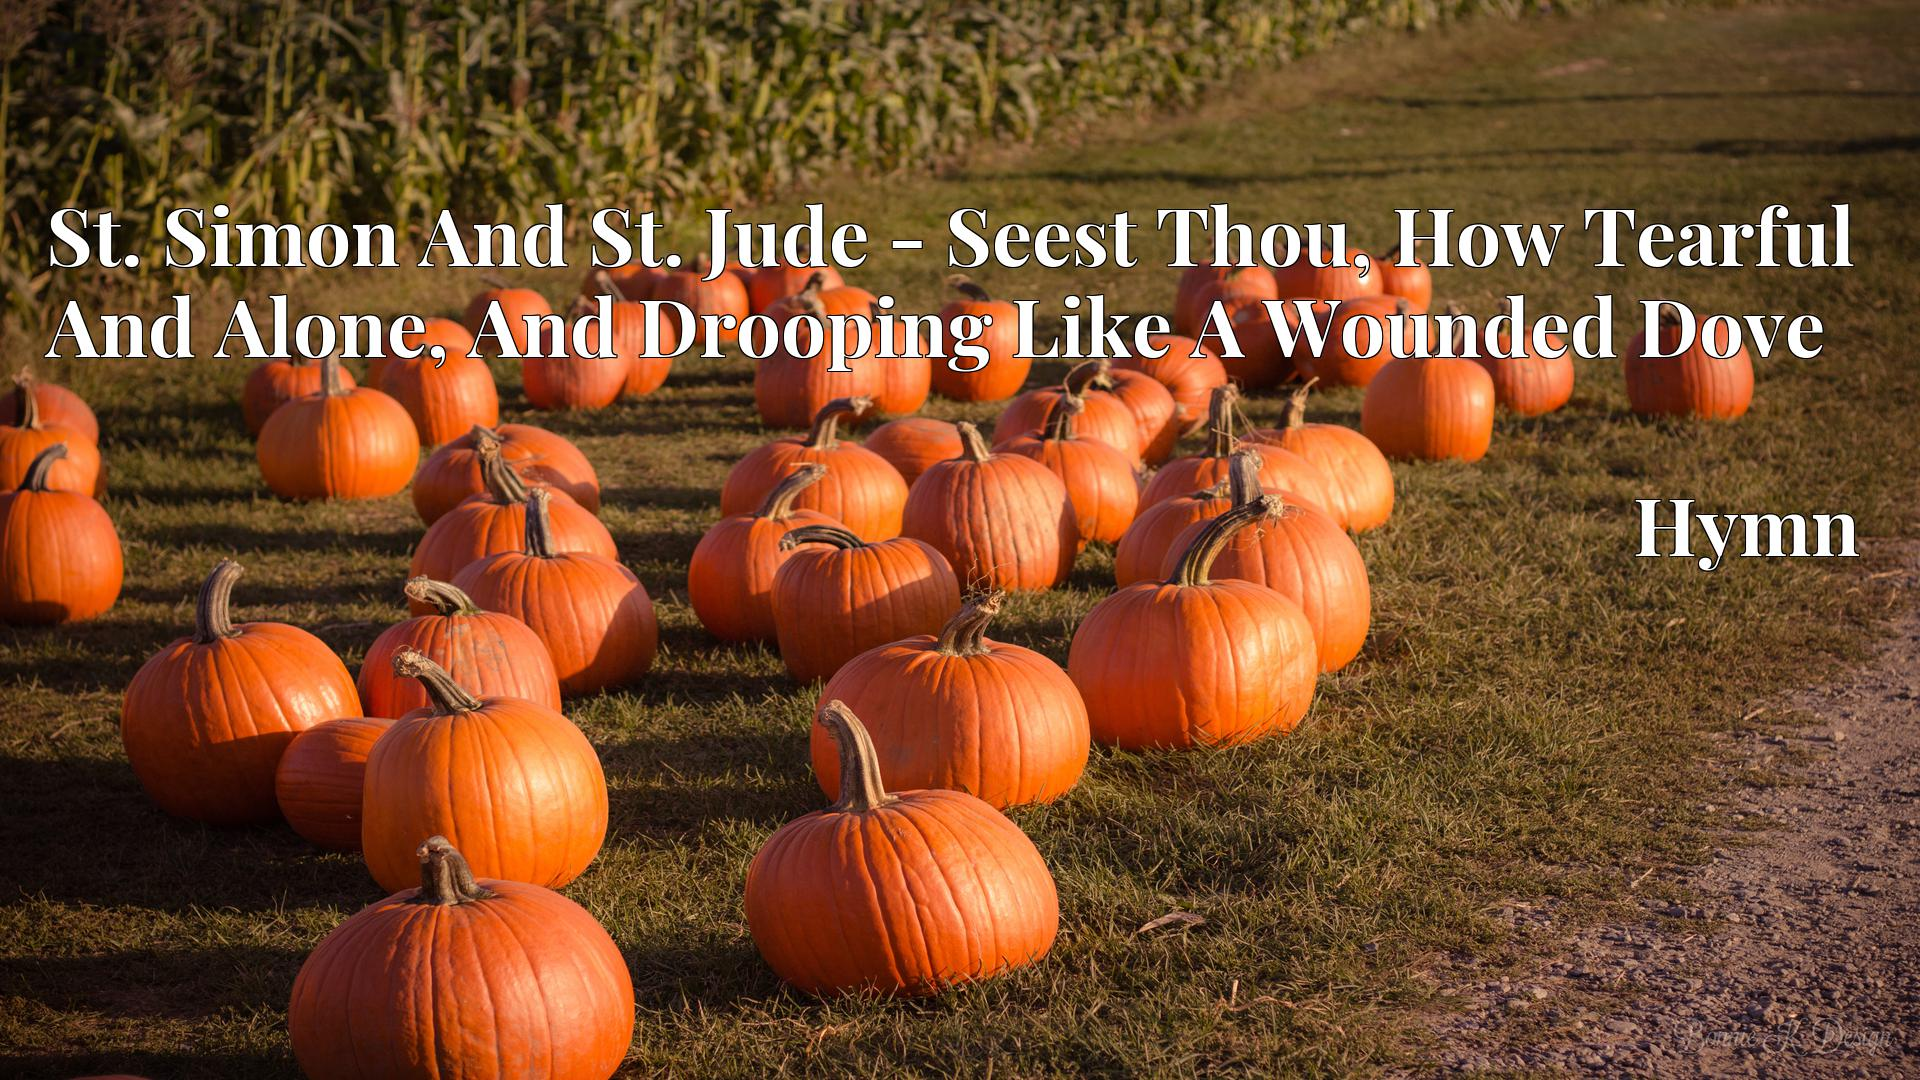 St. Simon And St. Jude - Seest Thou, How Tearful And Alone, And Drooping Like A Wounded Dove Hymn